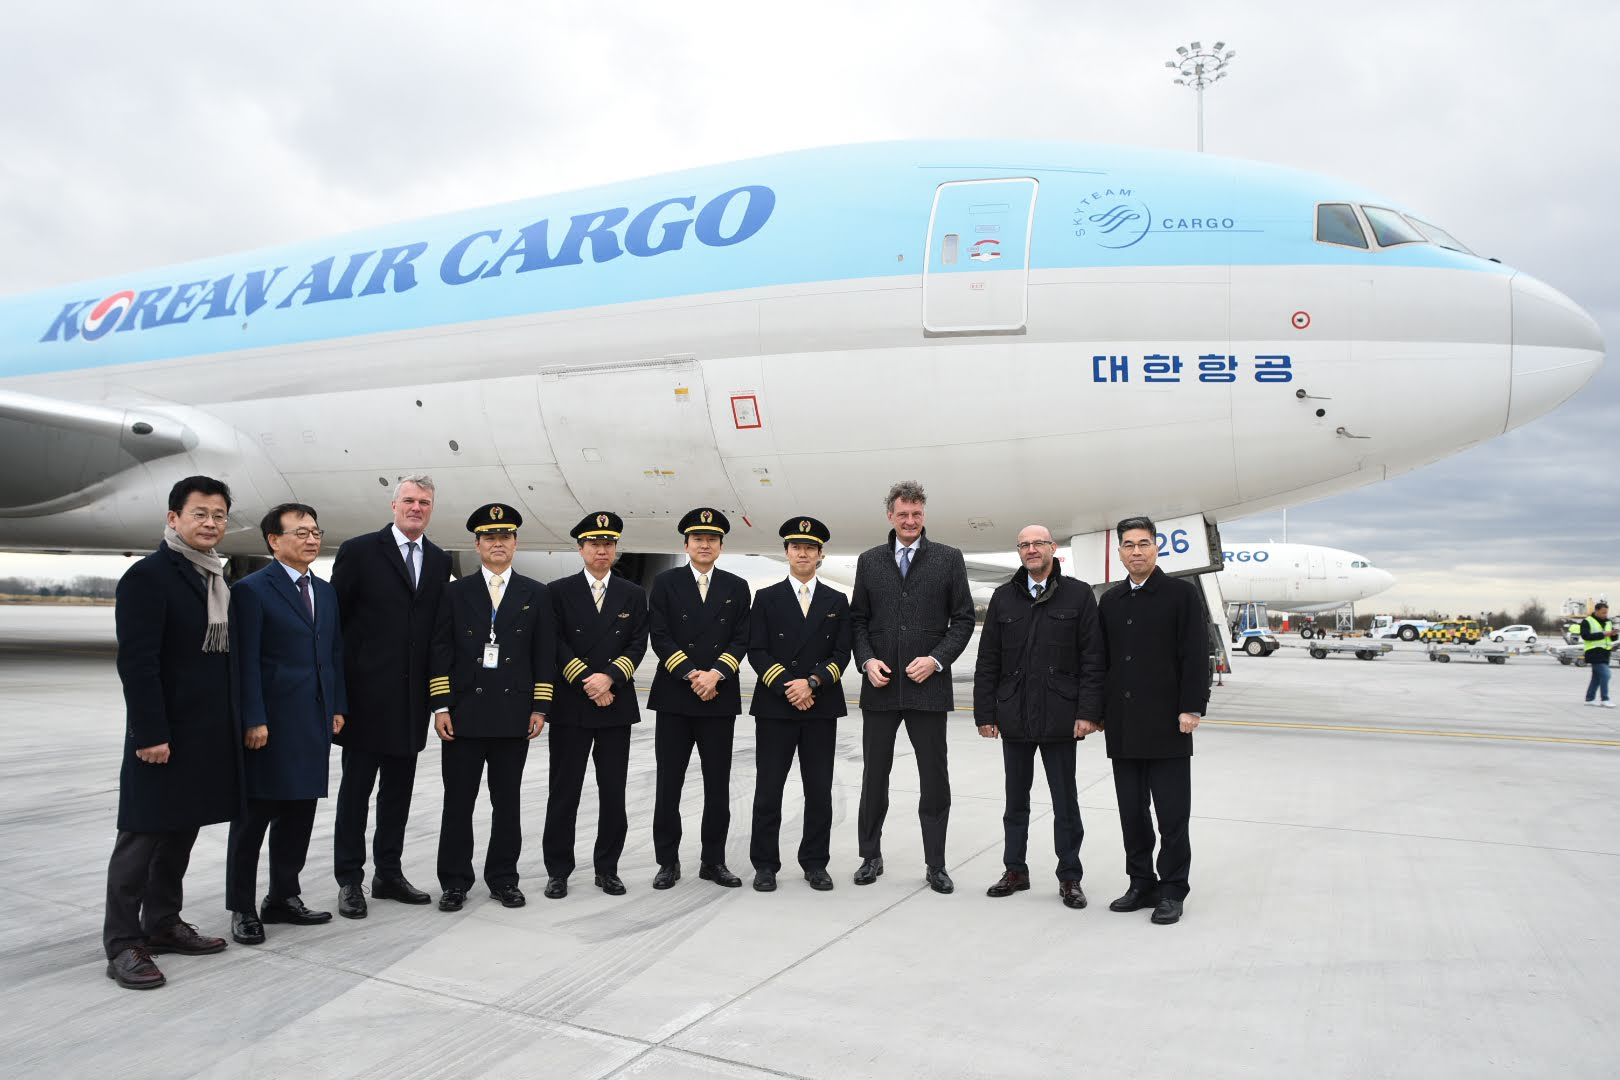 One of the Korean Cargo Teams